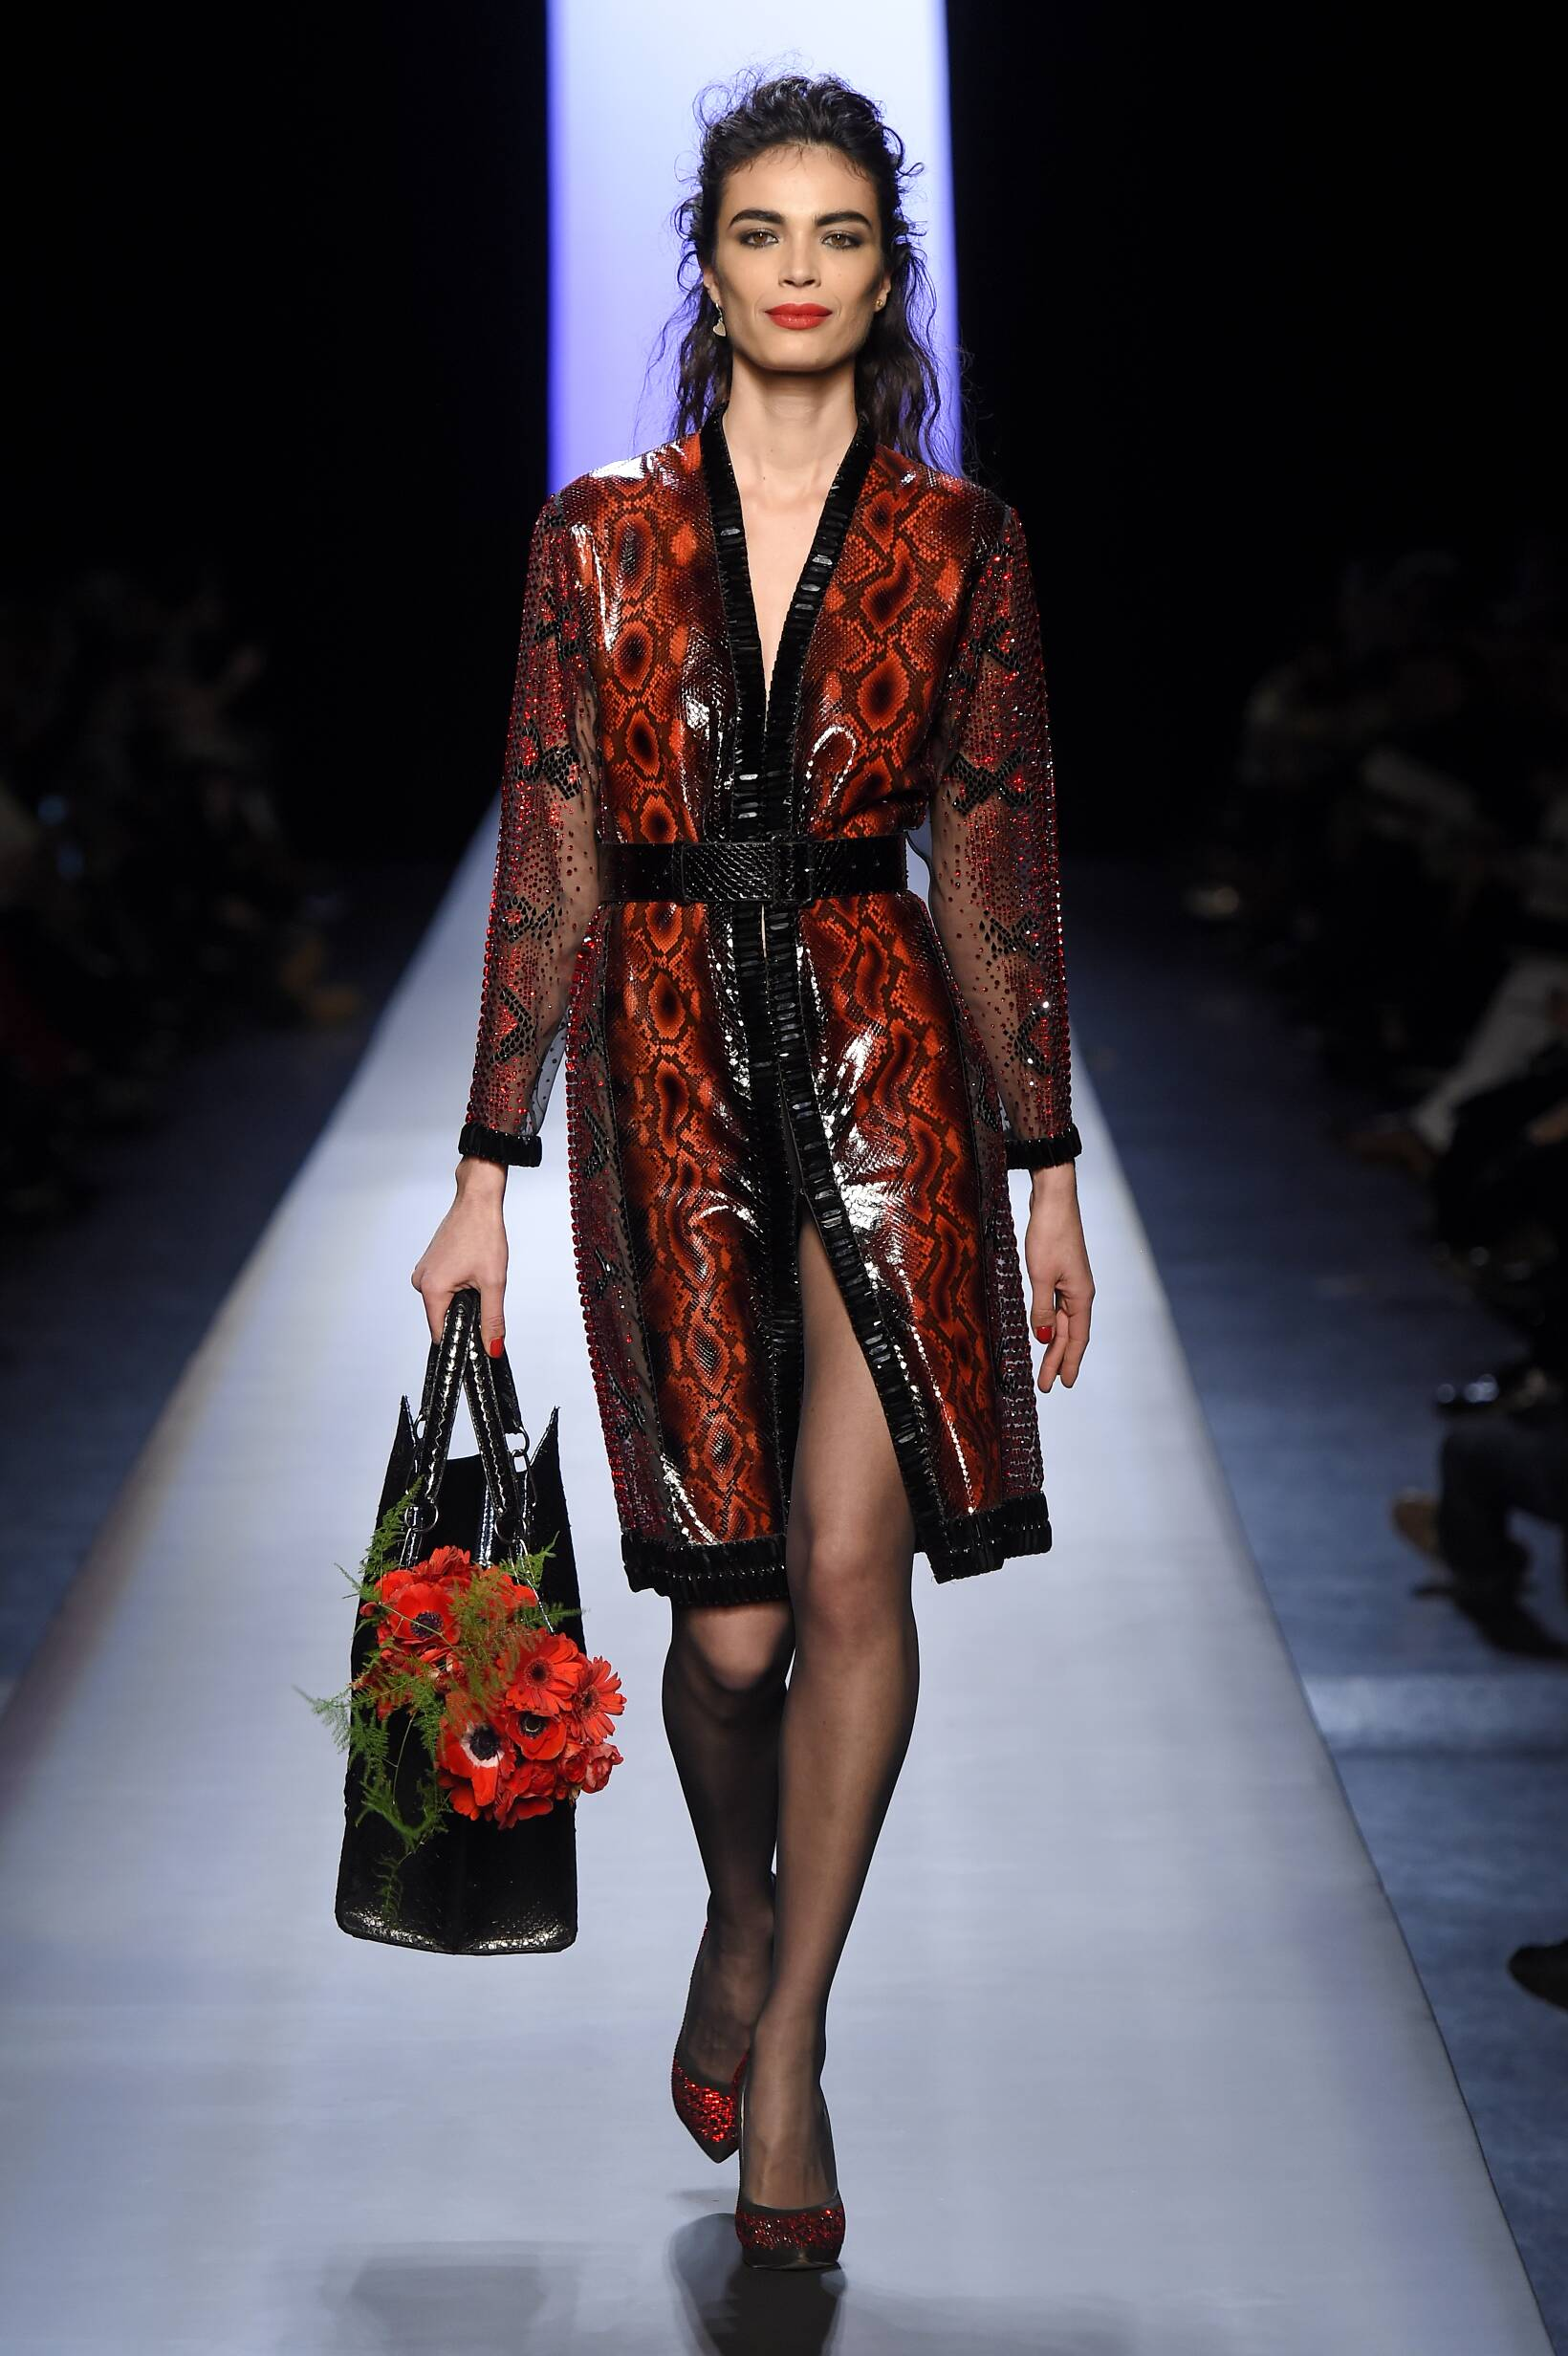 Jean Paul Gaultier Haute Couture Collection Fashion Trends